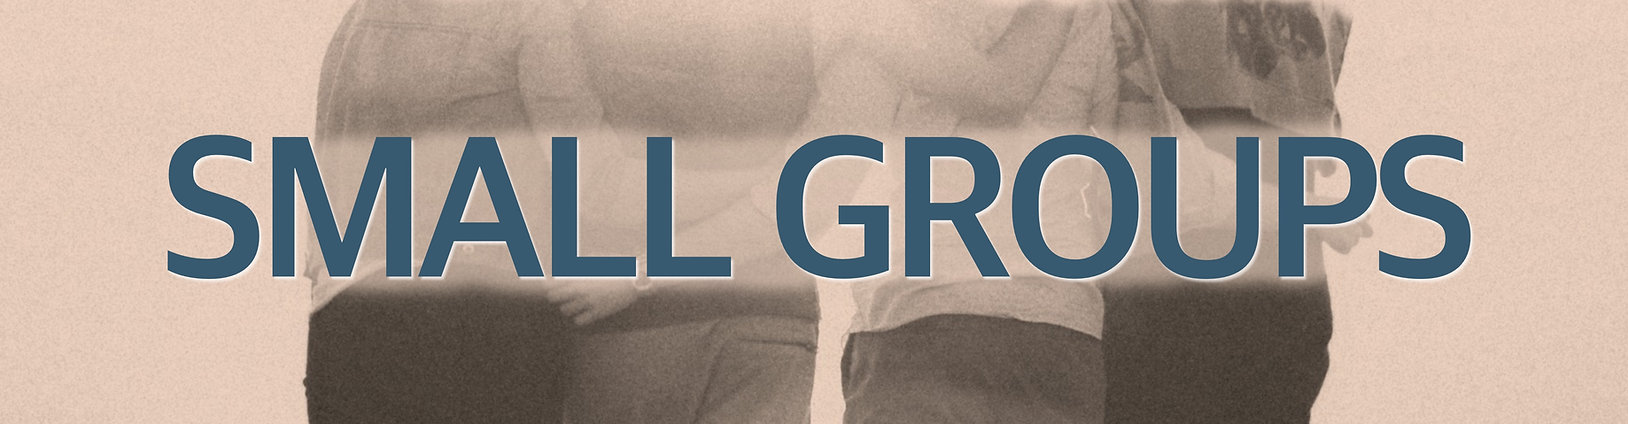 Small Groups - Slim.jpg